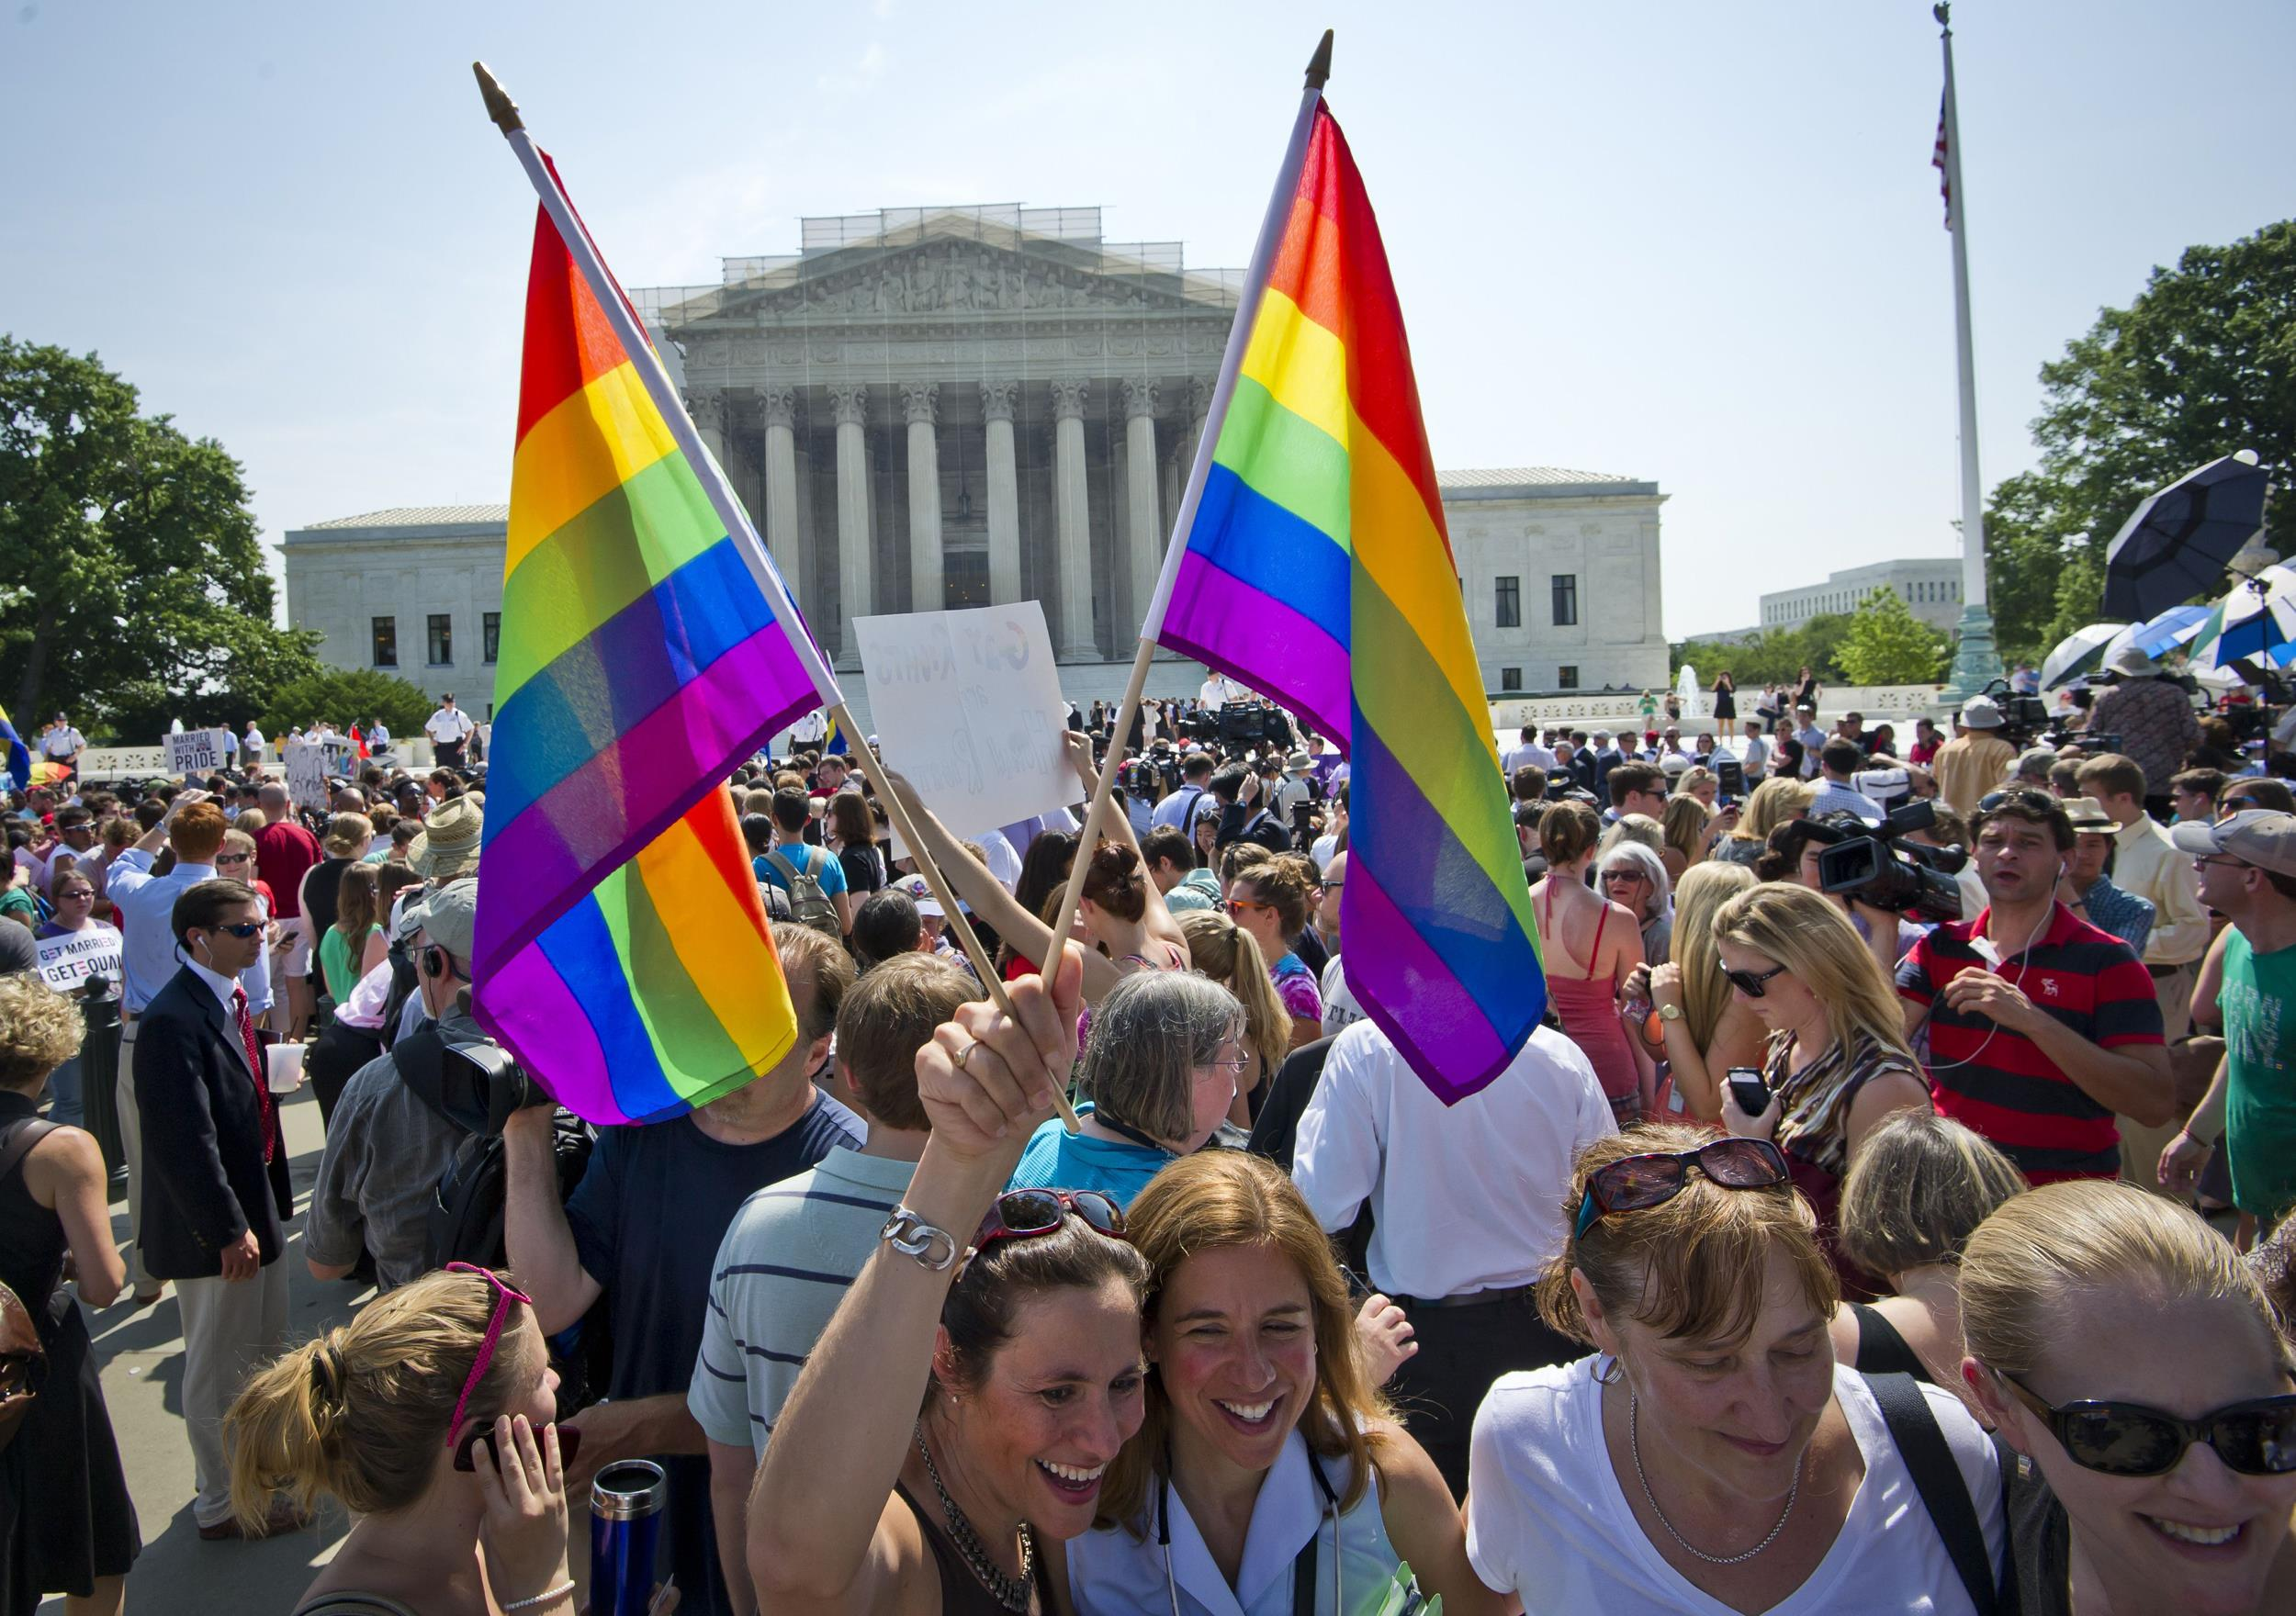 SCOTUS Gay Marriage Decision: How Will It Impact Employee Benefits? - Featured Image